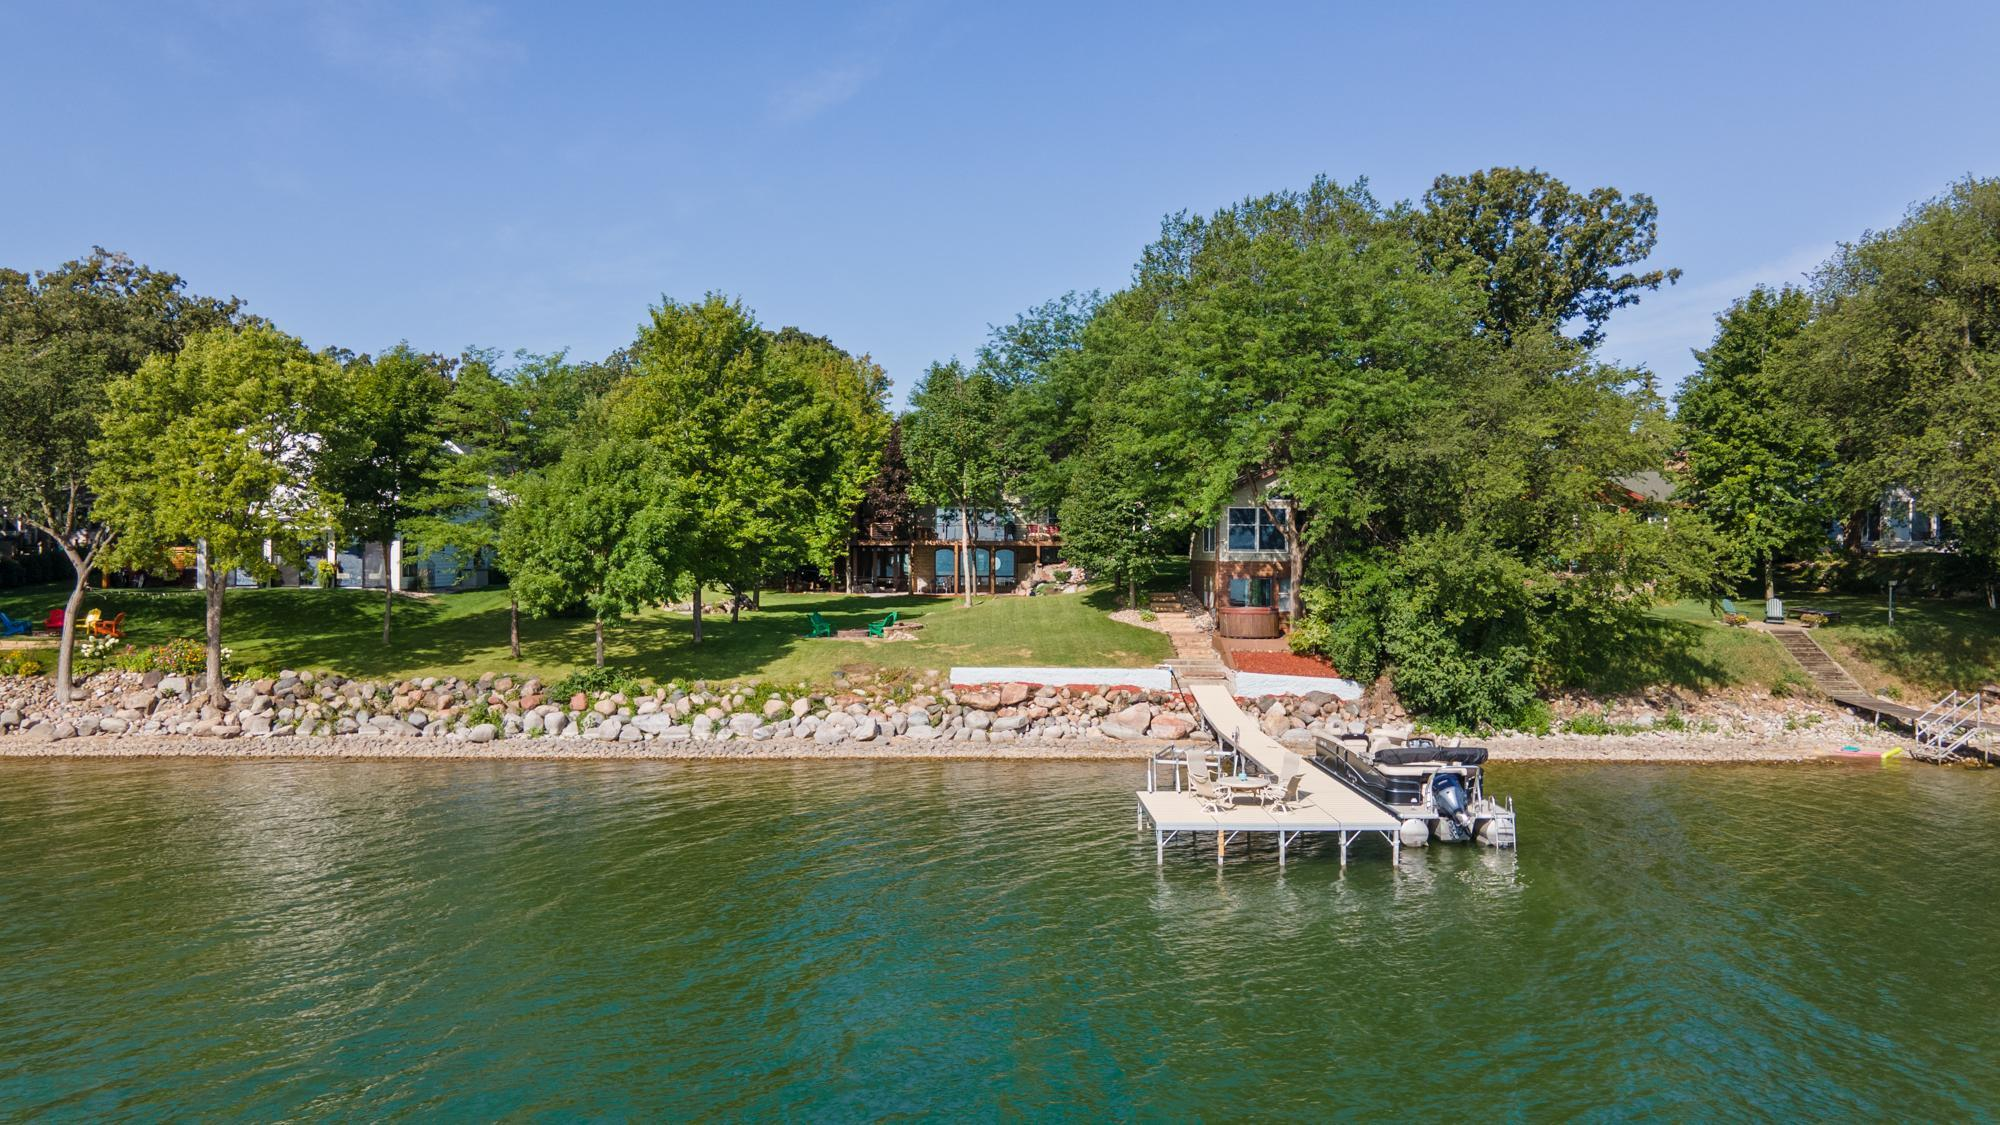 Spectacular Green Lake home offers rare, private 125' of lakeshore frontage. This house is loaded with unique features and great for entertaining! Open floor plan features remodeled kitchen with new appliances, granite countertops, and center island that opens to dining and living area with 3-sided stone surrounded fireplace. Features include main floor and upper level master suite plus three additional bedrooms. Enjoy the lake breeze and starry nights in the lakeside screen porch with gas fireplace! Lower level spa and low maintenance indoor pool with waterfall feature. The lower level features a large gaming and exercise area, second kitchen, and family room. Enjoy the spectacular lake views from every room. This home is professionally landscaped with boulders granite, mature trees, and fire pit. Maybe the best feature of this property is the guest house on the waters edge with full bath, kitchen, living room and storage. Located near restaurants, park,s and local entertainment!